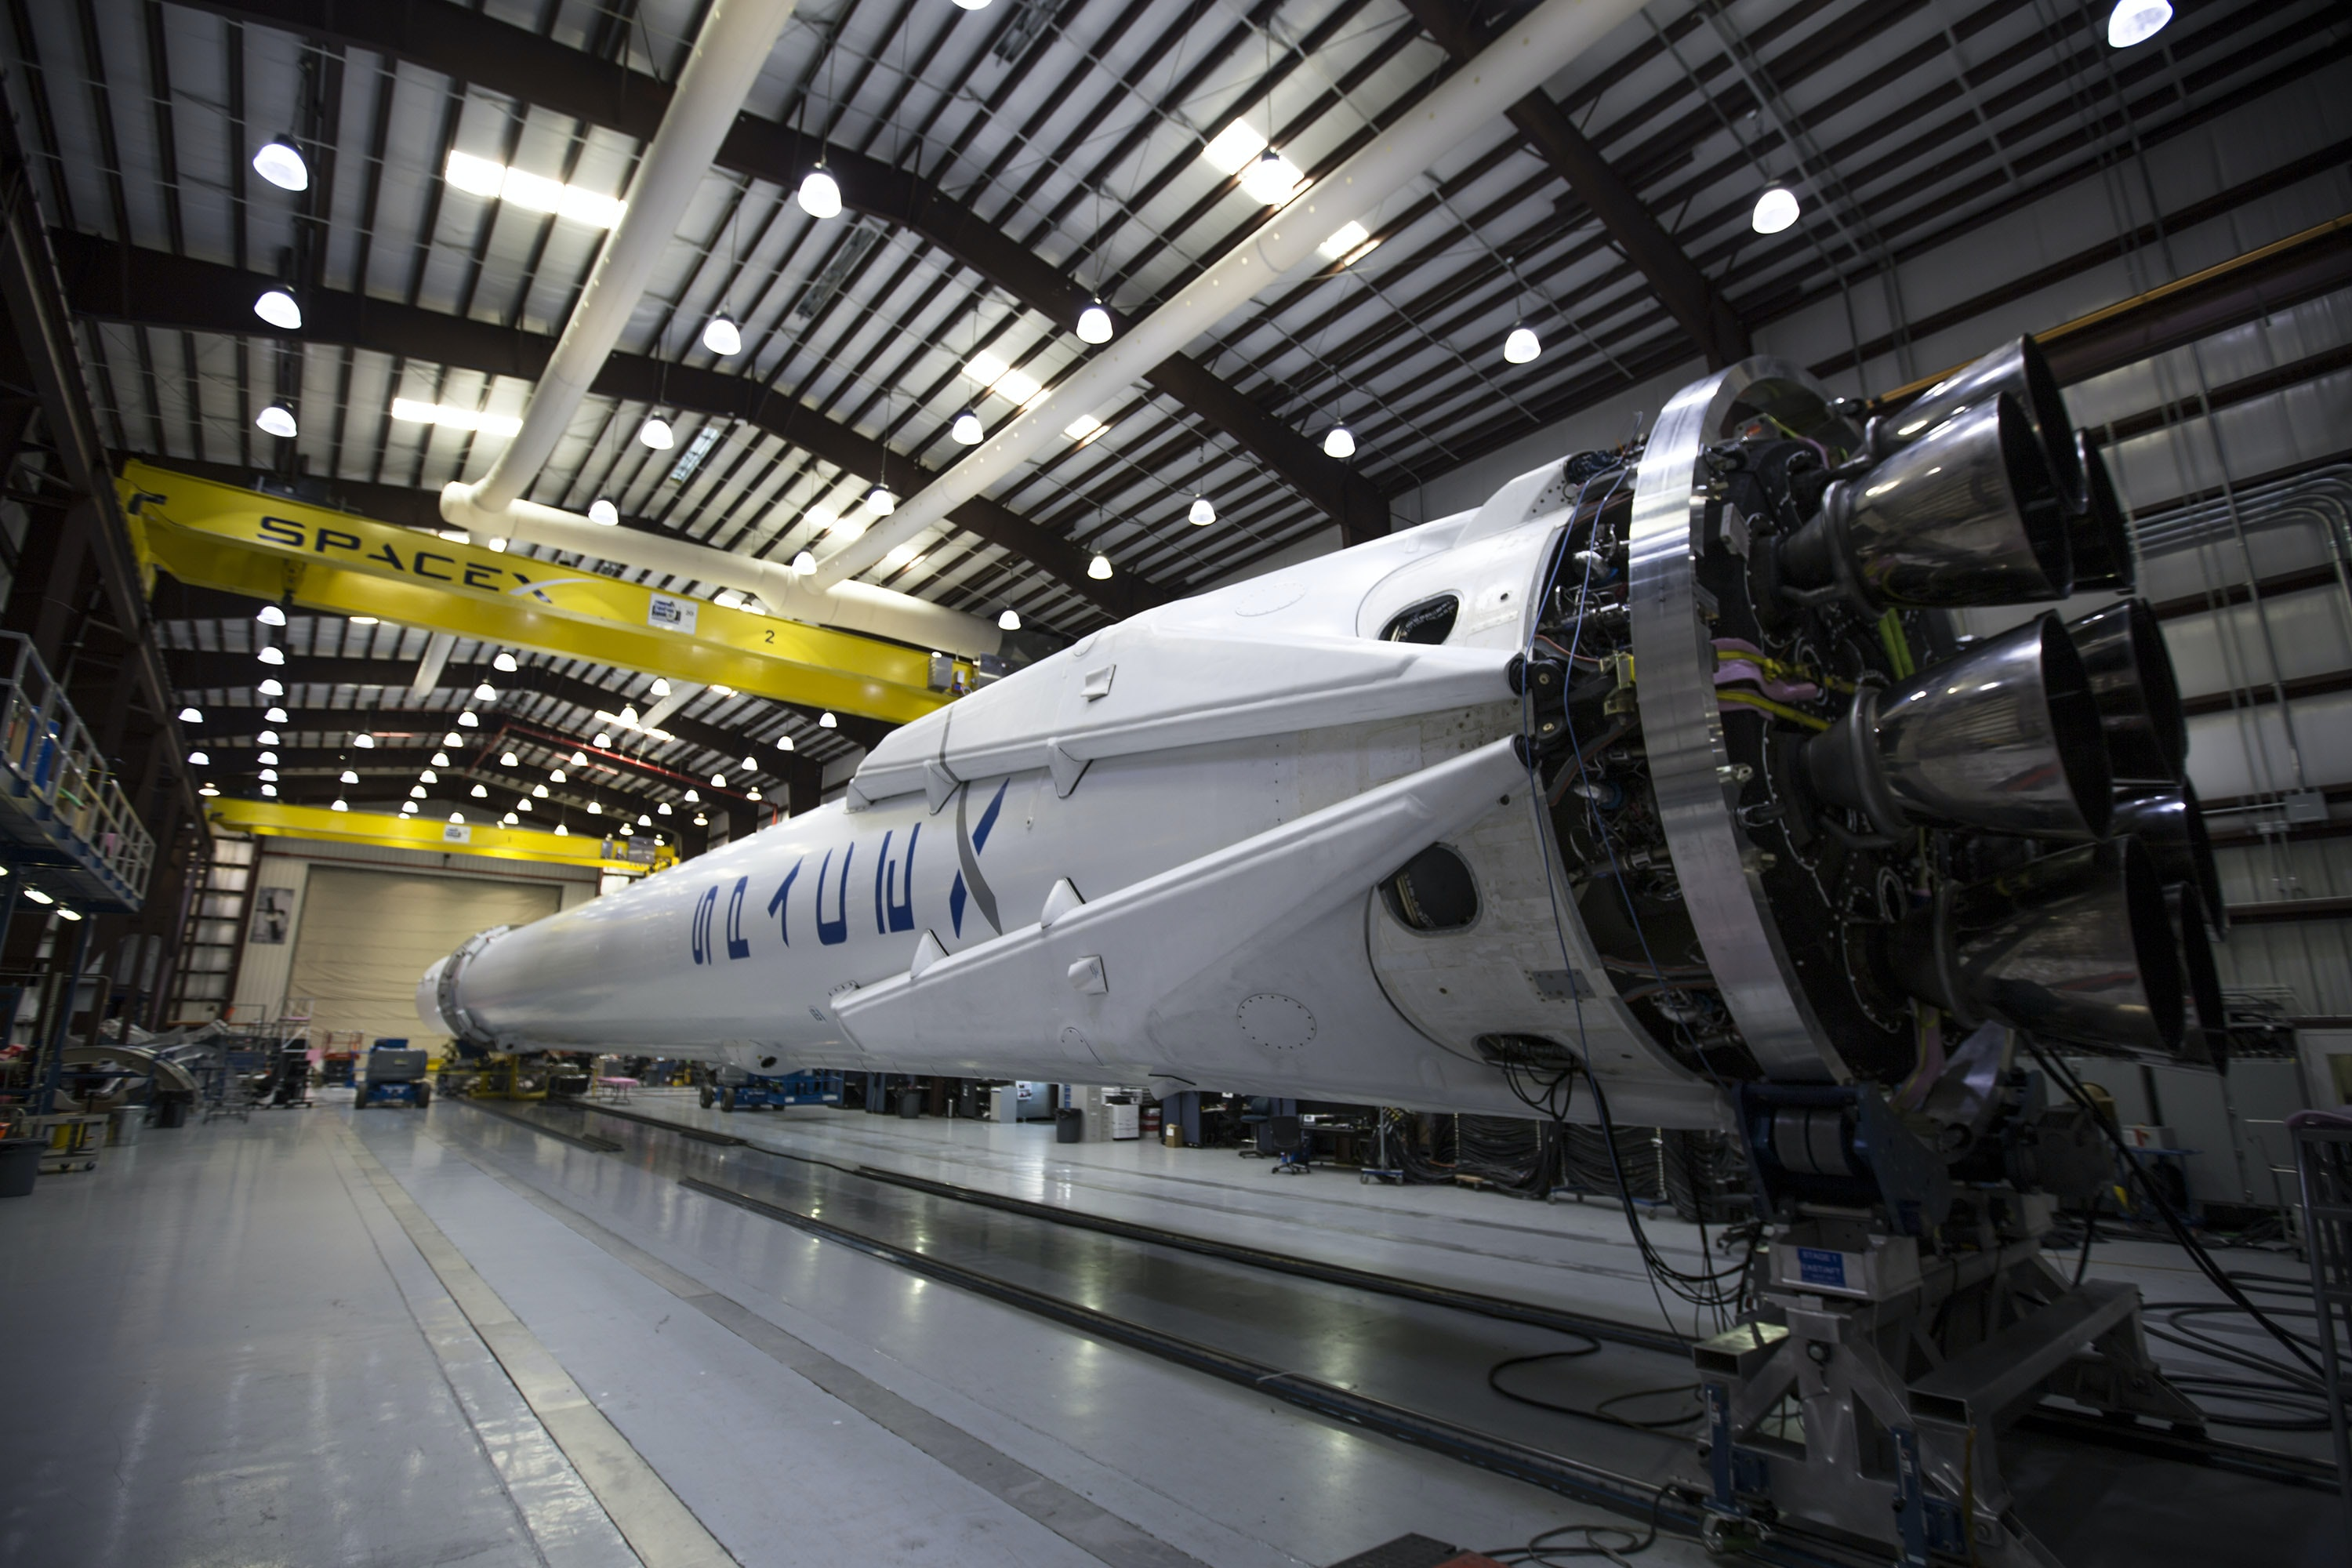 white space shuttle indoors